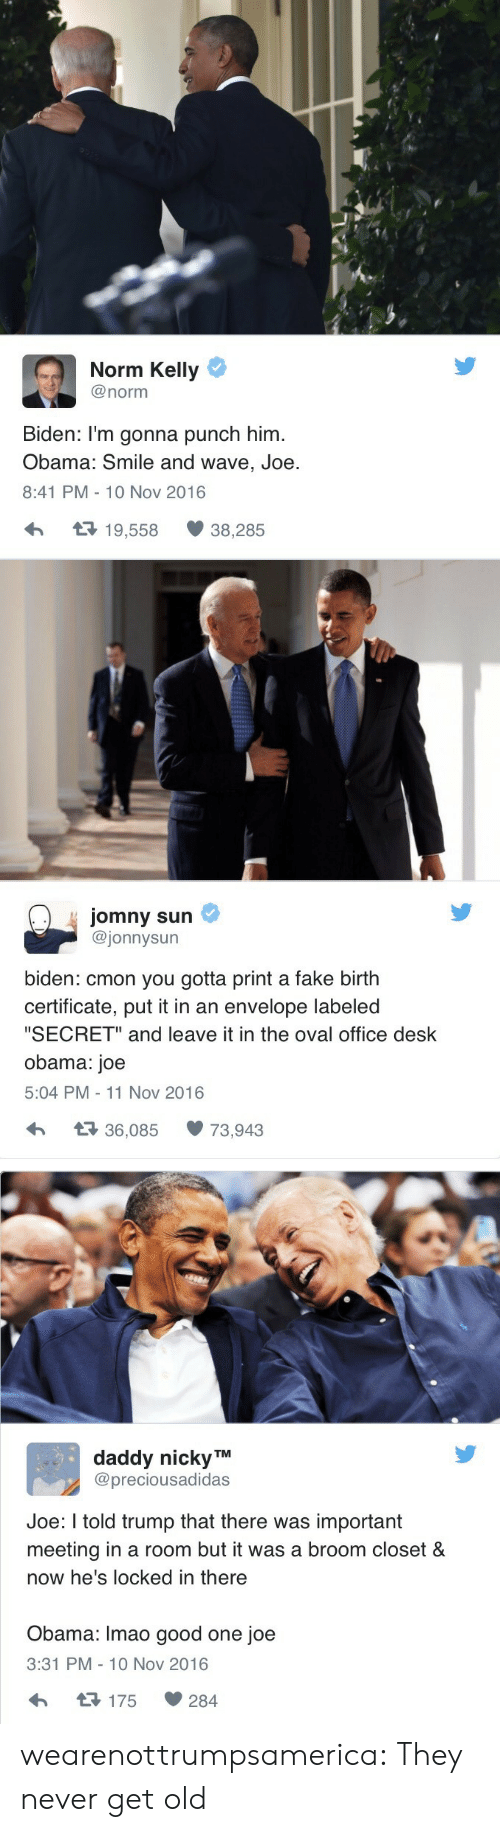 "Fake, Norm Kelly, and Obama: Norm Kelly  @norm  Biden: I'm gonna punch him  Obama: Smile and wave, Joe  8:41 PM- 10 Nov 2016  19,558  38,285   jomny sun  @jonnysun  biden: cmon you gotta print a fake birth  certificate, put it in an envelope labeled  ""SECRET"" and leave it in the oval office desk  obama: joe  5:04 PM 11 Nov 2016  36,08573,943   daddy nicky TM  @preciousadidas  Joe: I told trump that there was important  meeting in a room but it was a broom closet &  now he's locked in there  Obama: Imao good one joe  3:31 PM-10 Nov 2016  175  284 wearenottrumpsamerica:  They never get old"